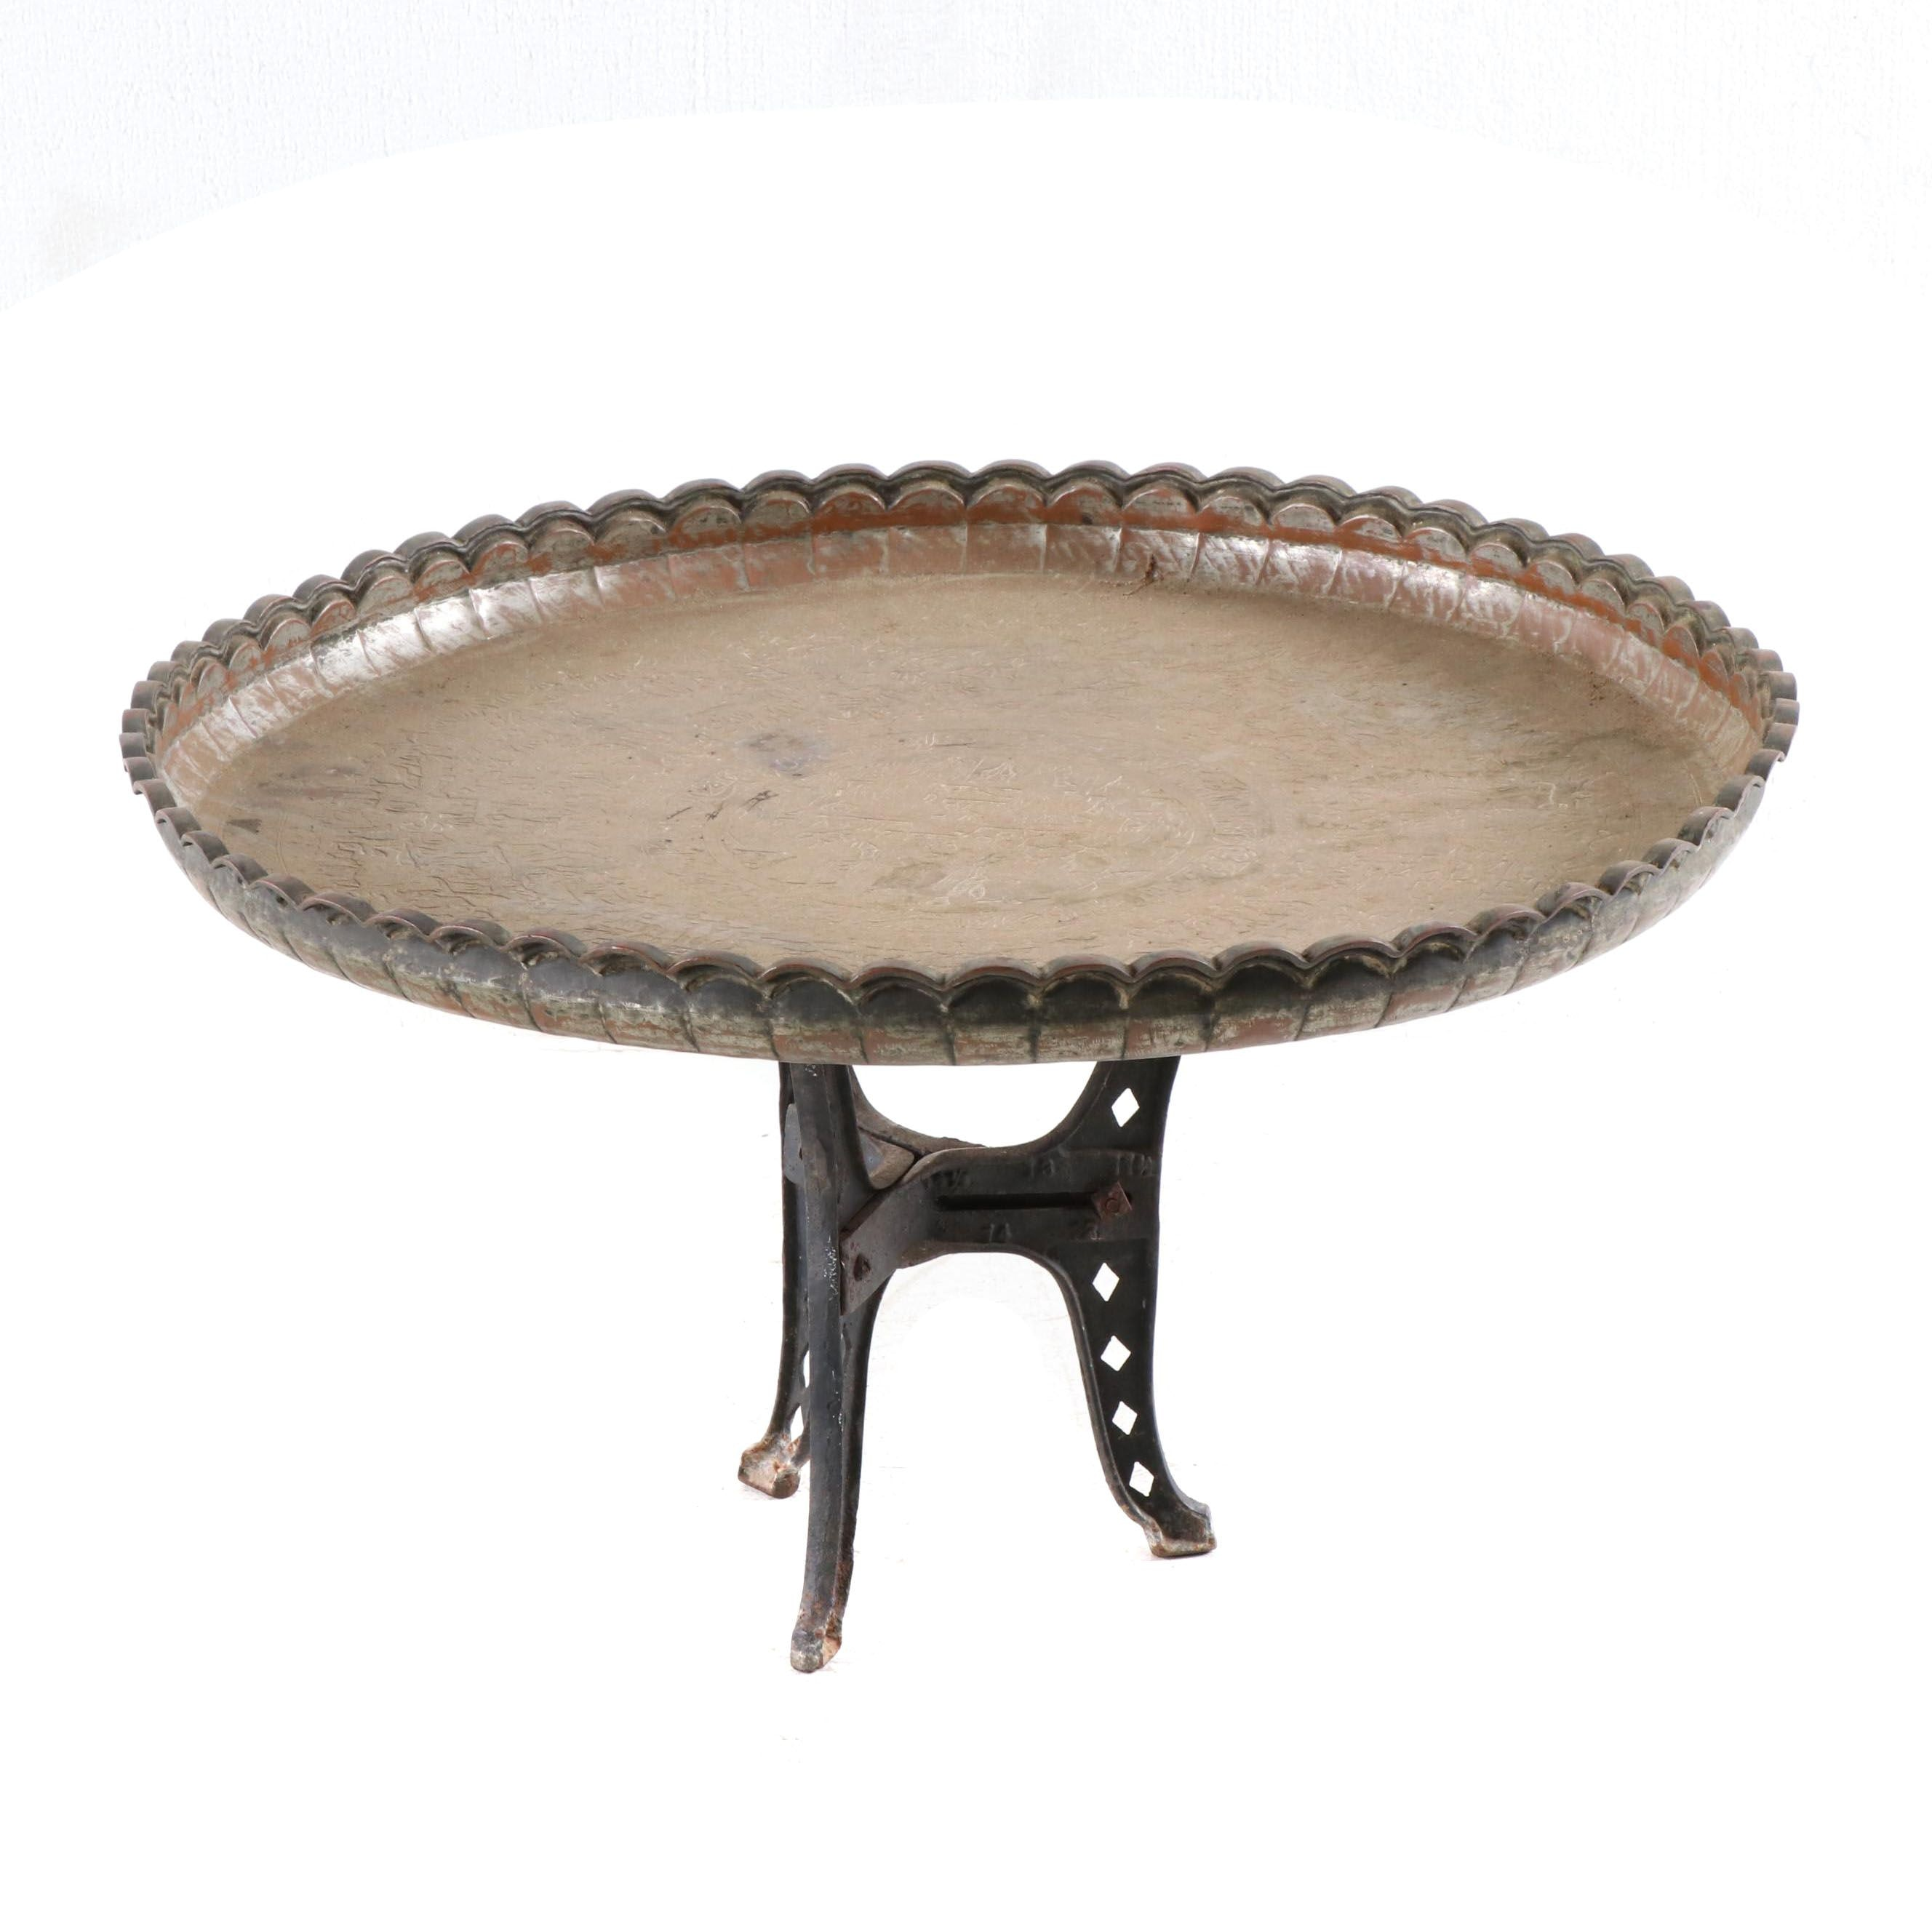 Indian Copper Plated Tray Table on Iron Base